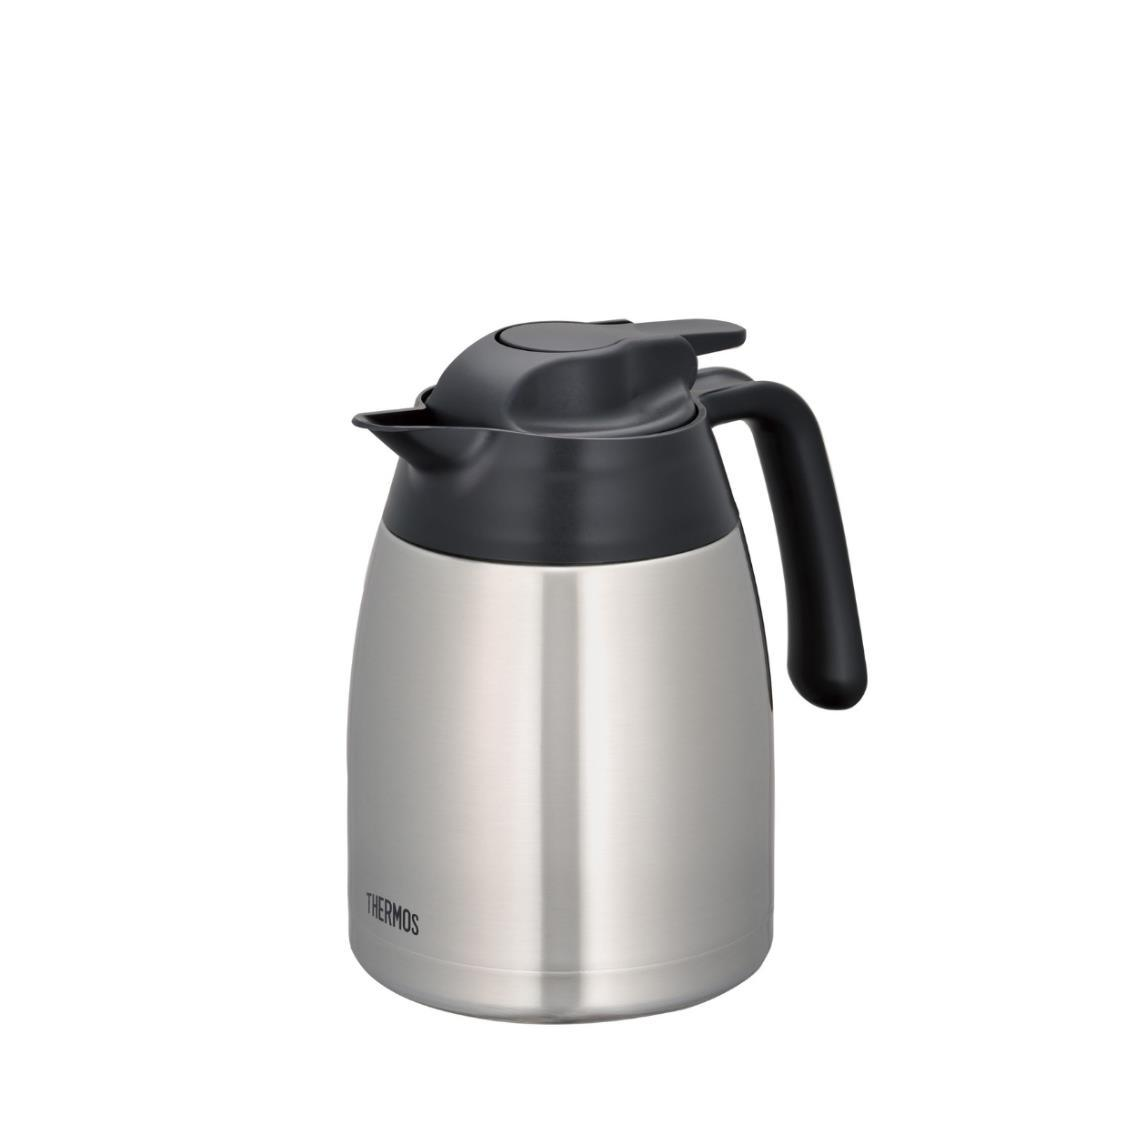 Thermos Stainless Steel Vacuum Insulated Carafe 10L